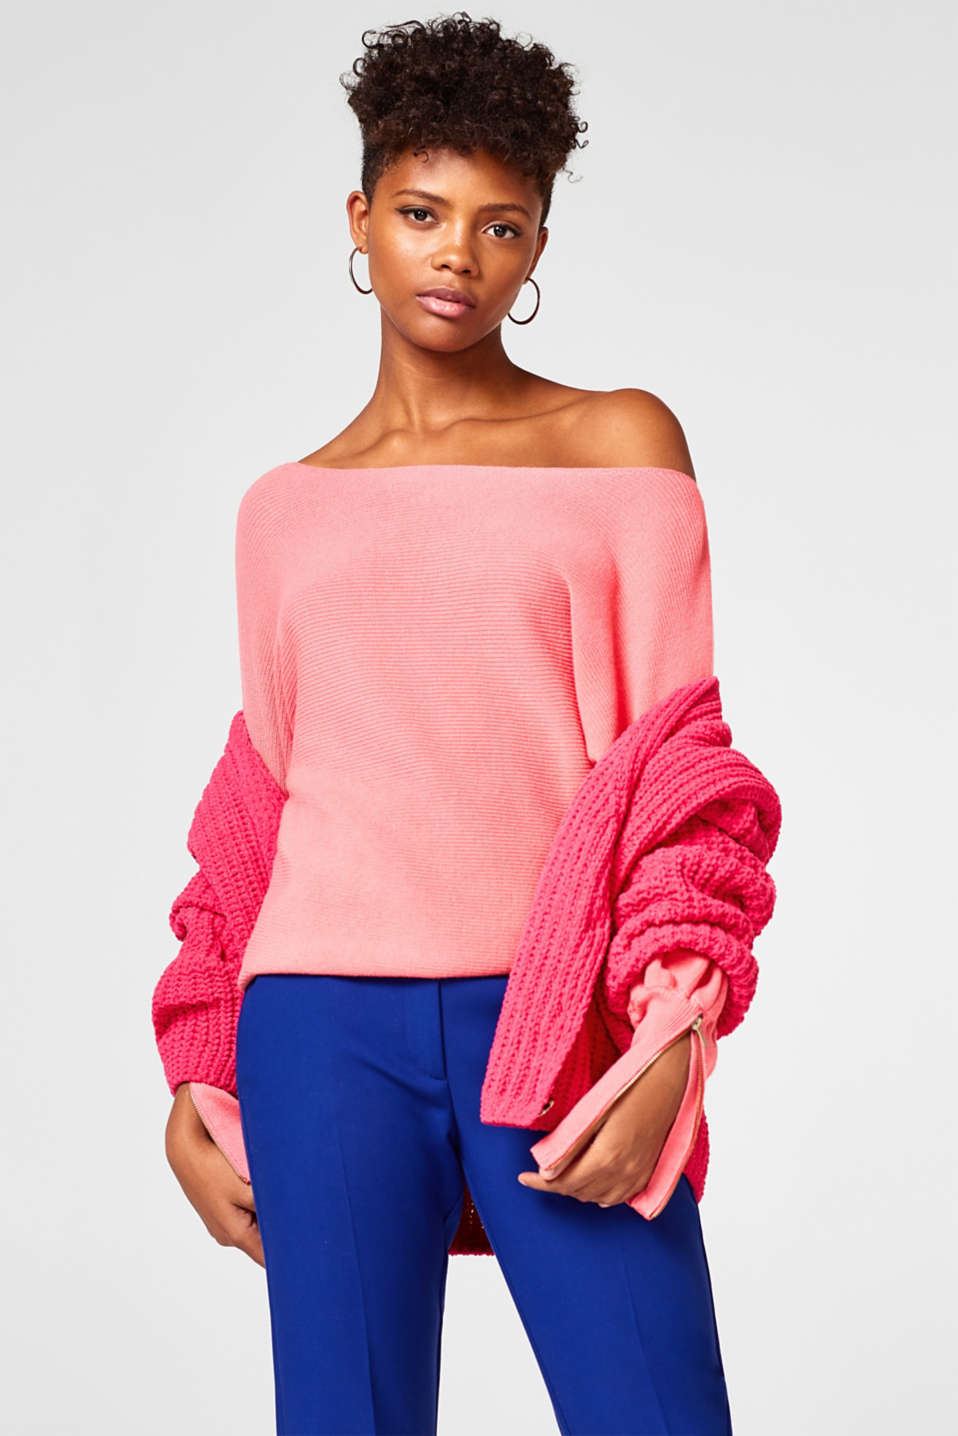 Off-Shoulder-Sweater aus Rippenstrick